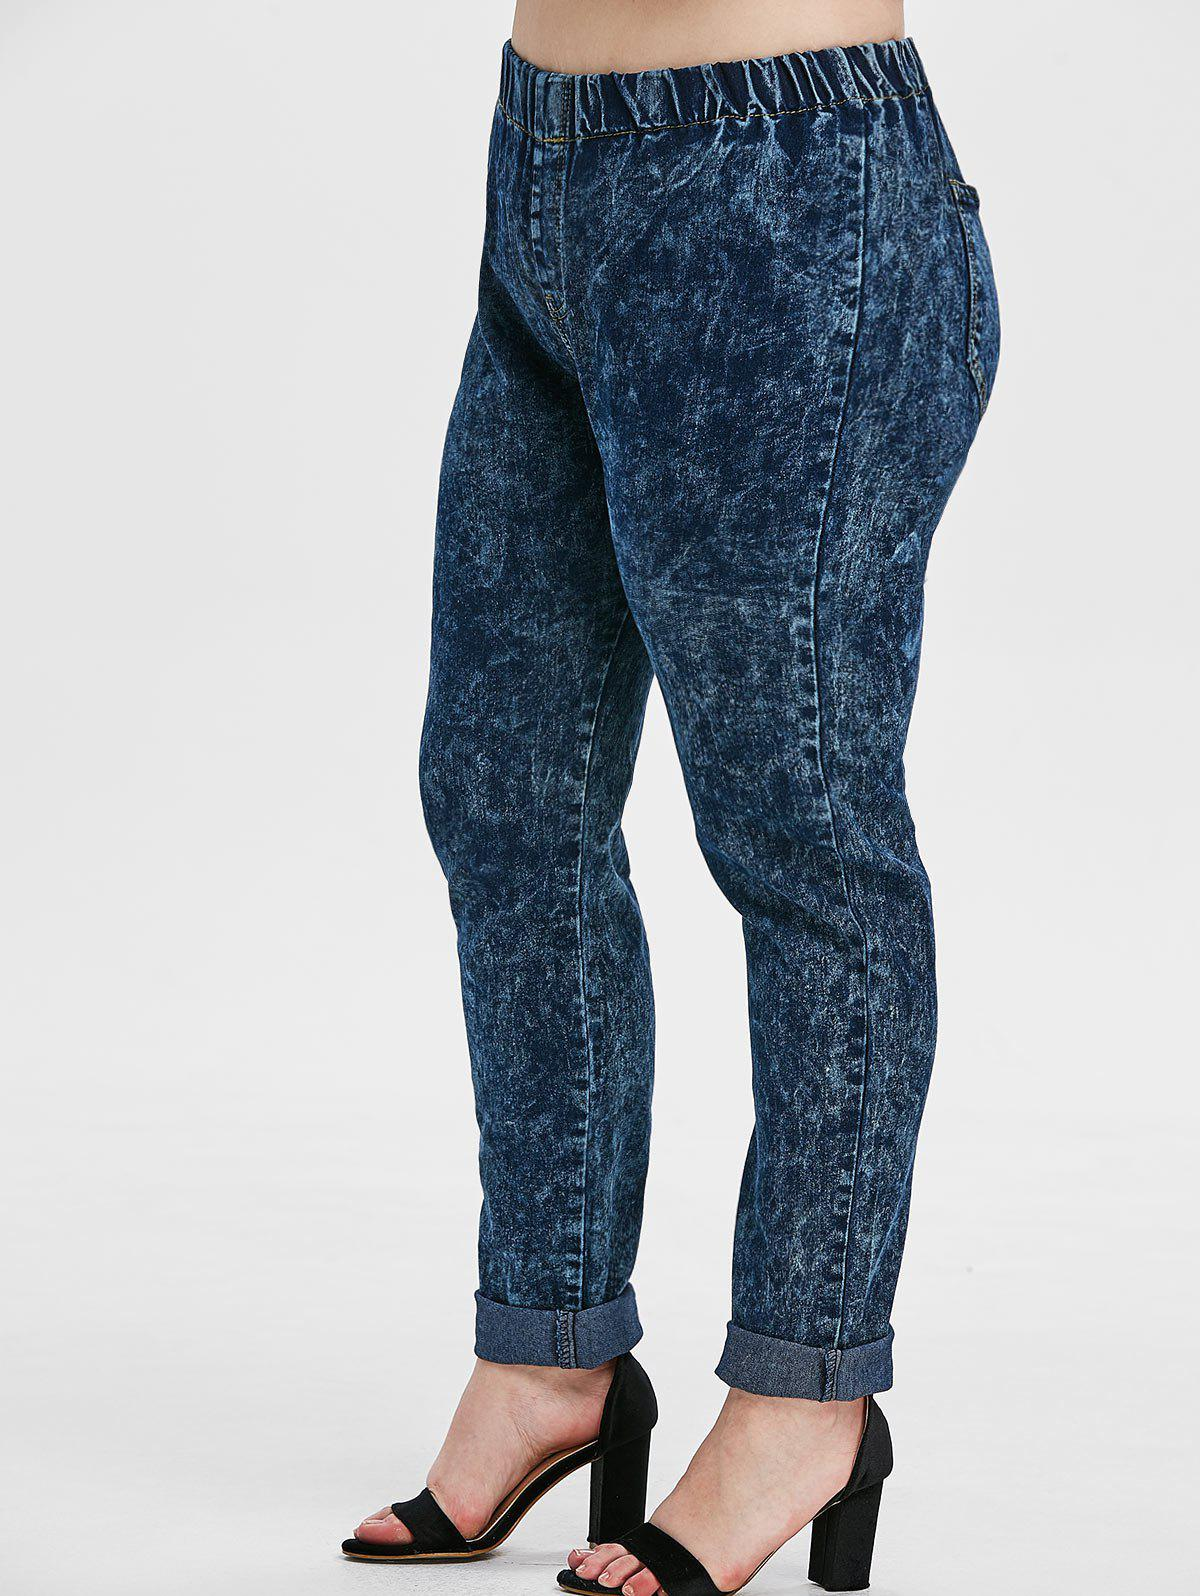 Unique High Waisted Snow Wash Back Pockets Plus Size Skinny Jeans